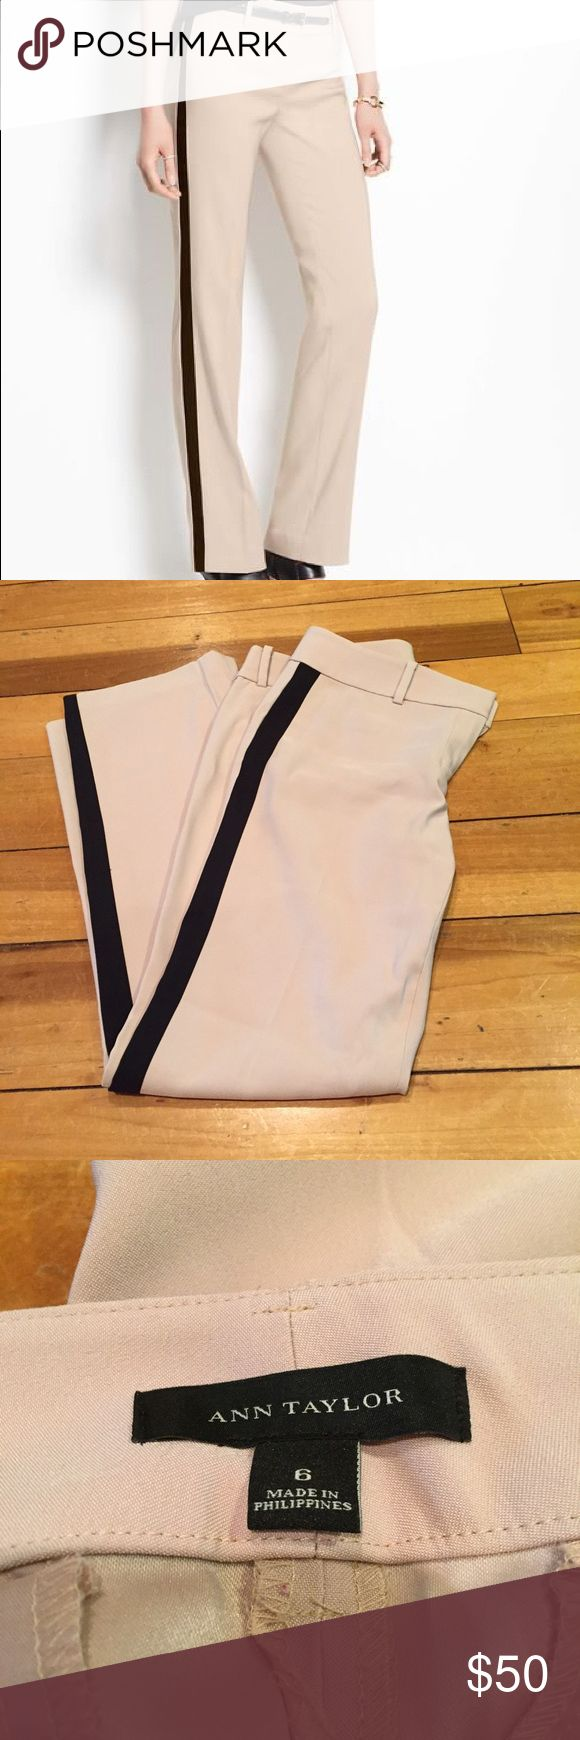 Ann Taylor tuxedo pants like new size 8 Tuxedo pants in tan and black by Ann Taylor, size 8. Worn less than 10 times, like new condition, perfect for work Ann Taylor Pants